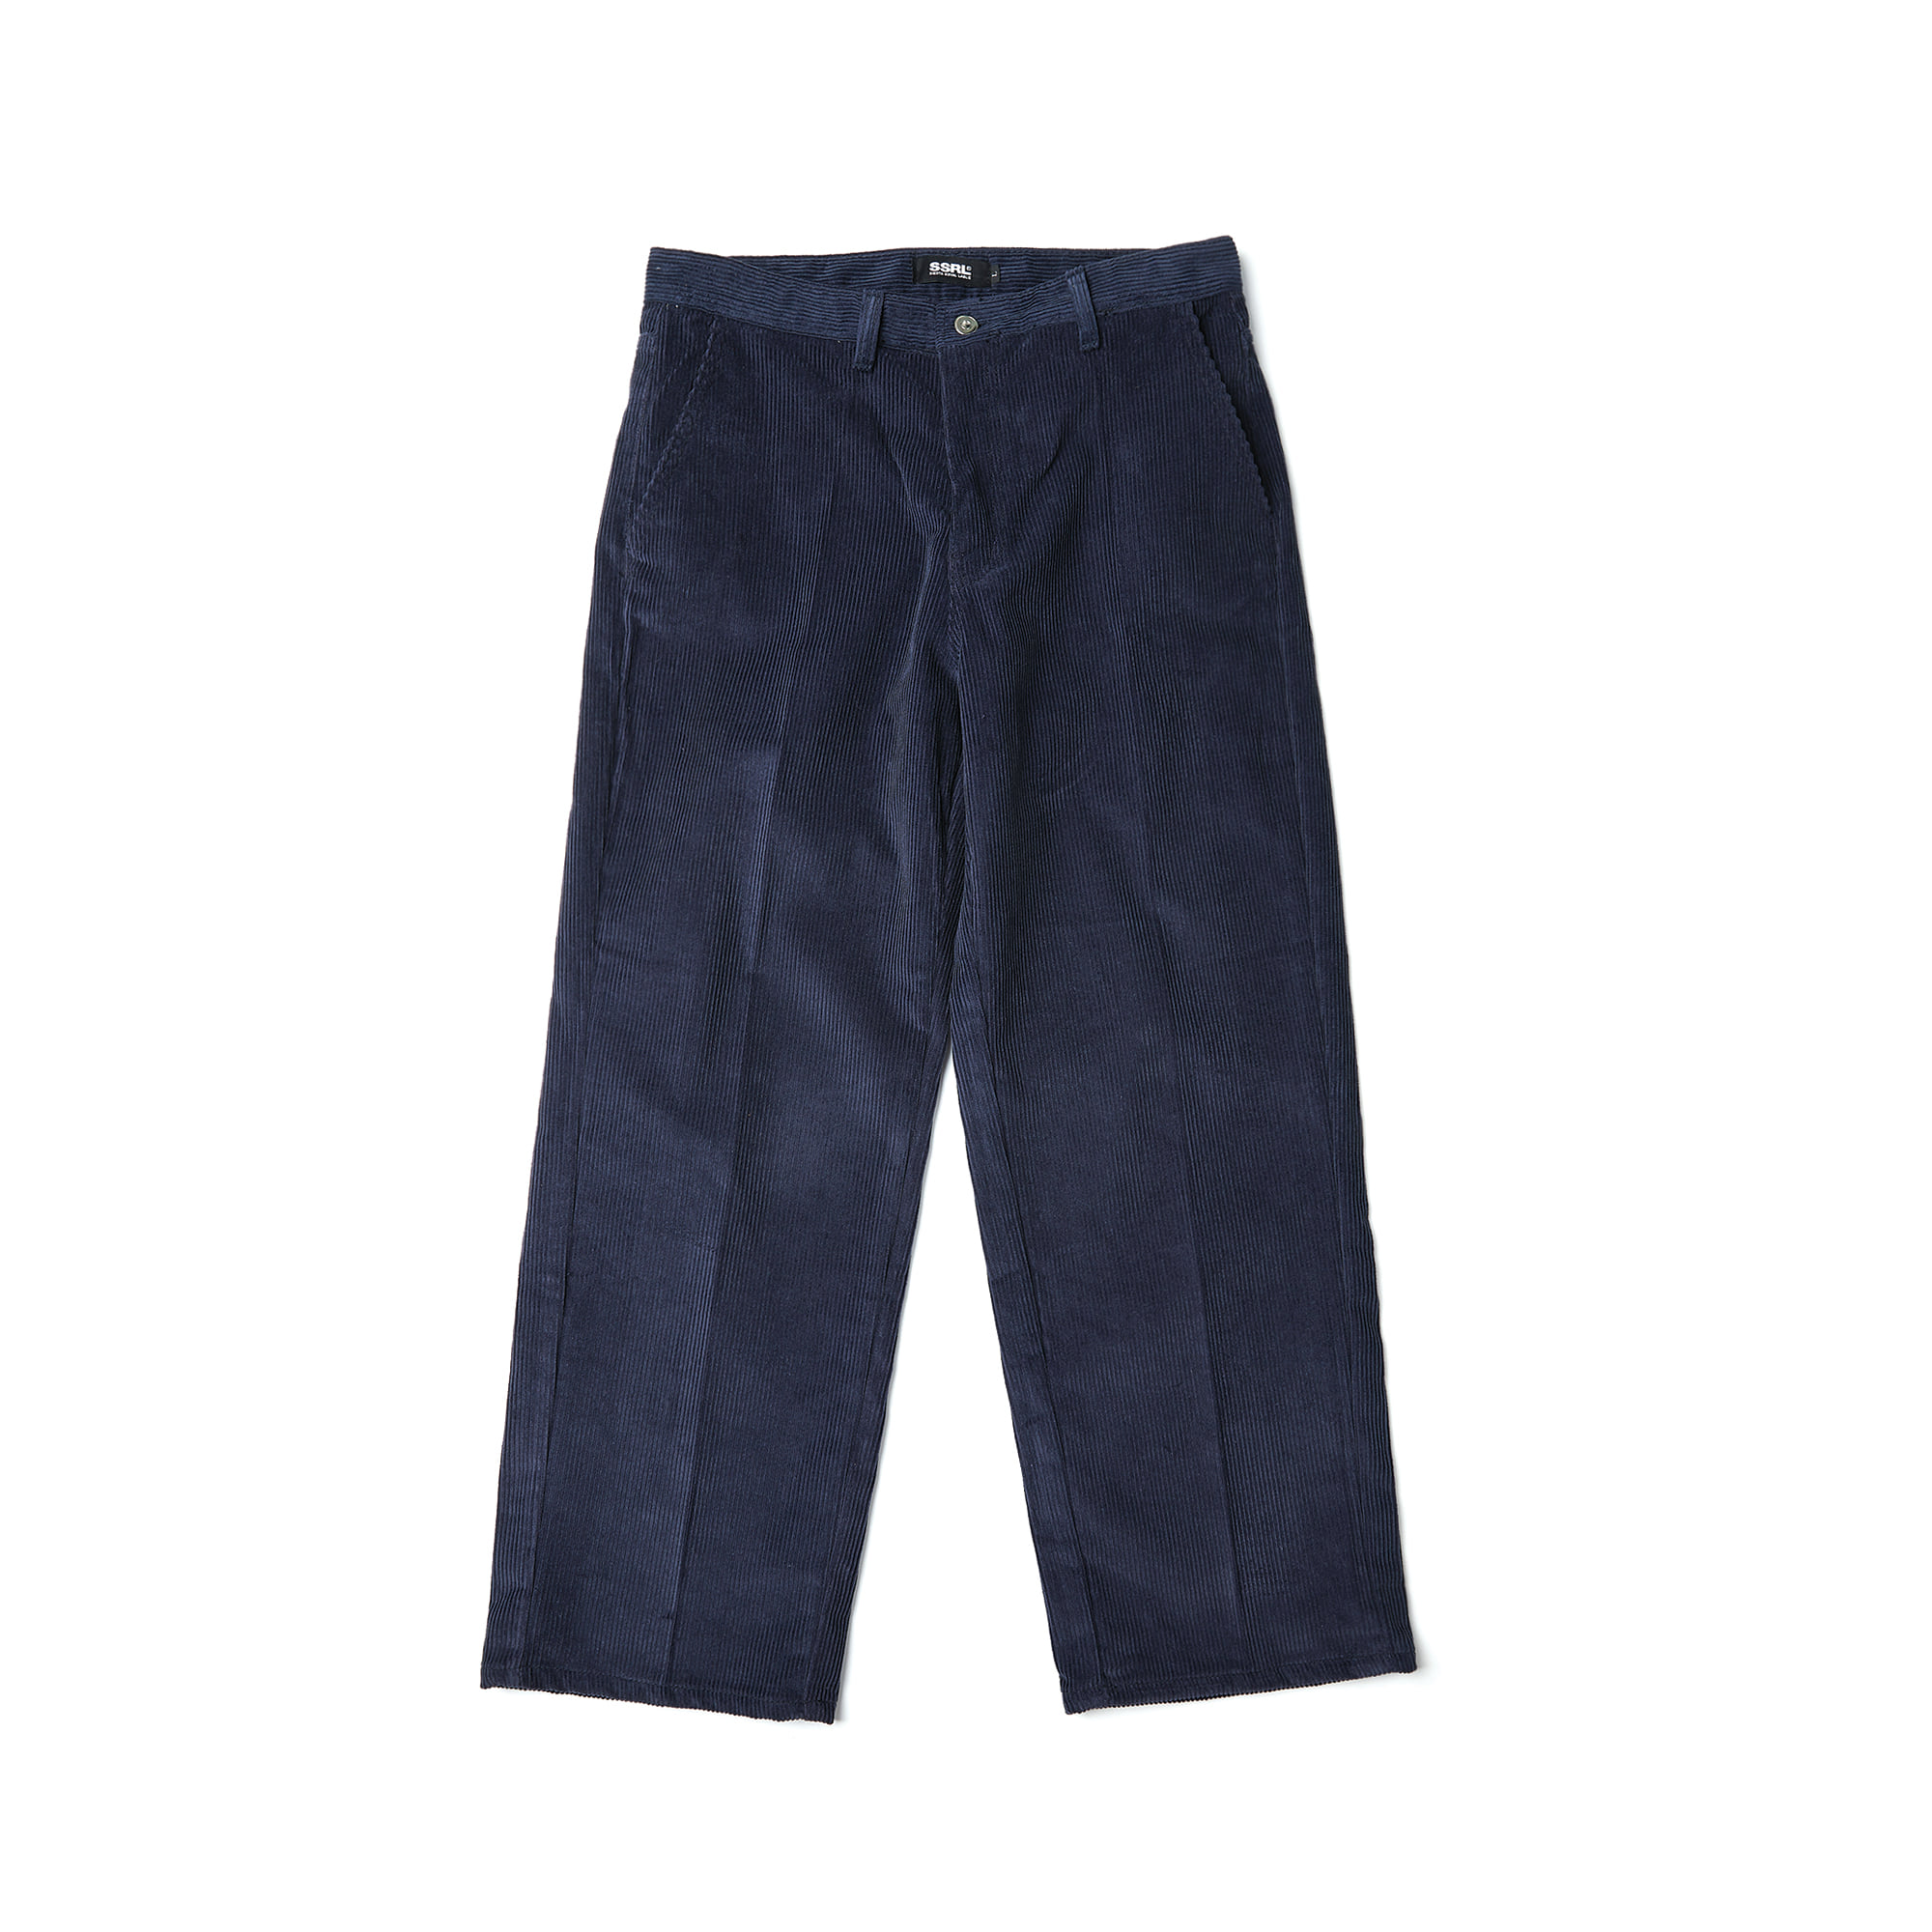 corduroy wide pants / navy